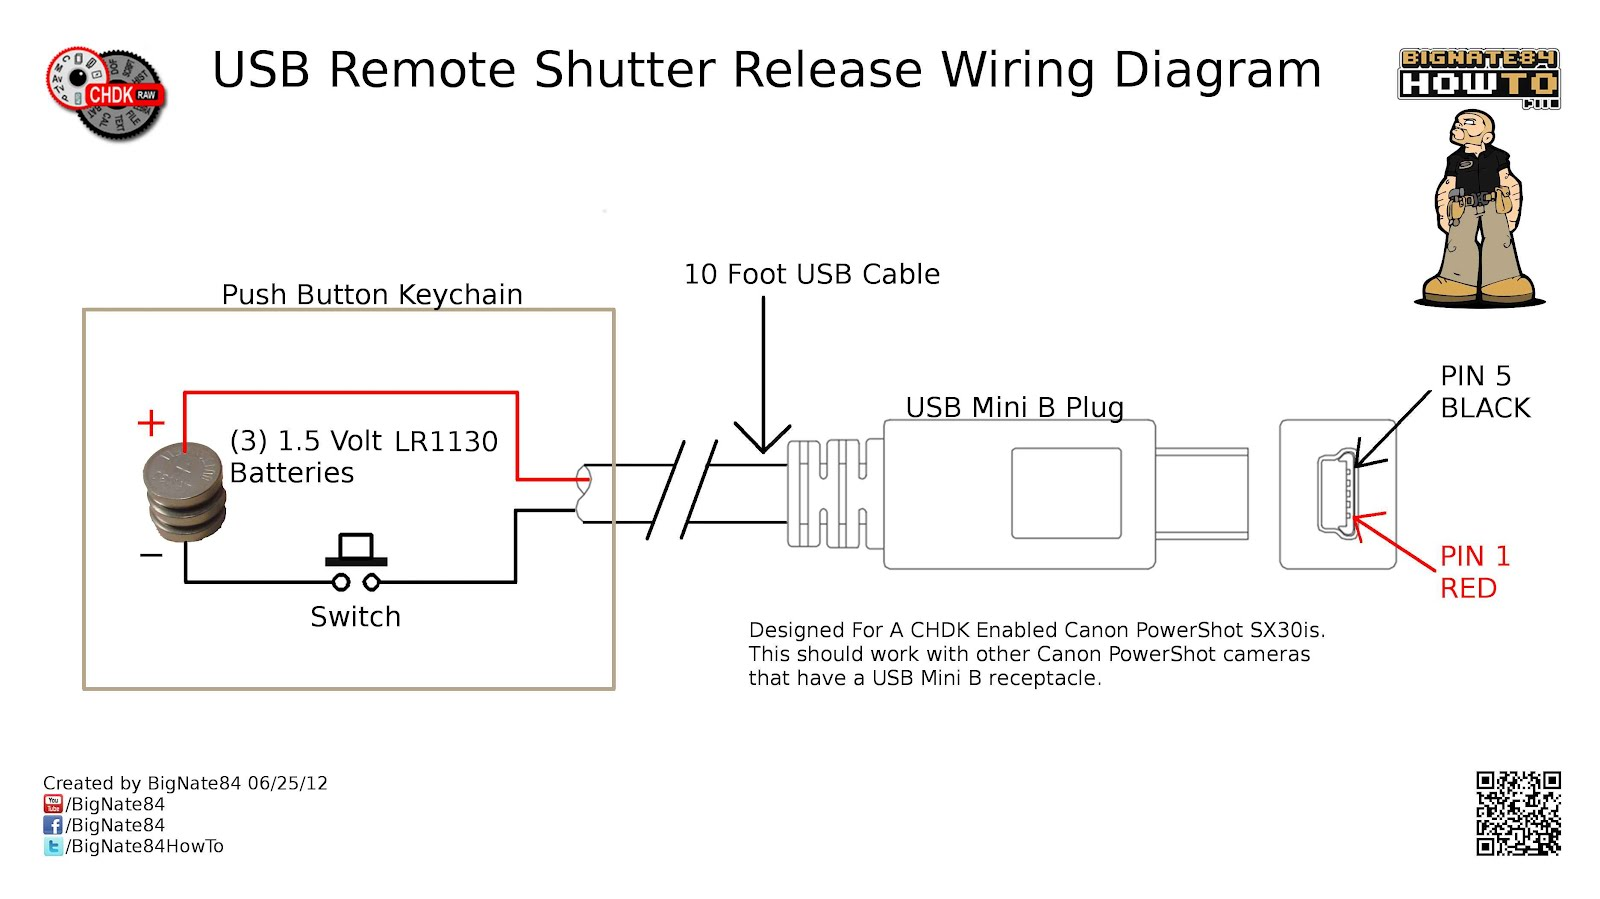 latest?cb=20120809225626 image 0001 usb remote shutter wiring diagram 1 jpeg chdk wiki usb to mini usb wire diagram at n-0.co